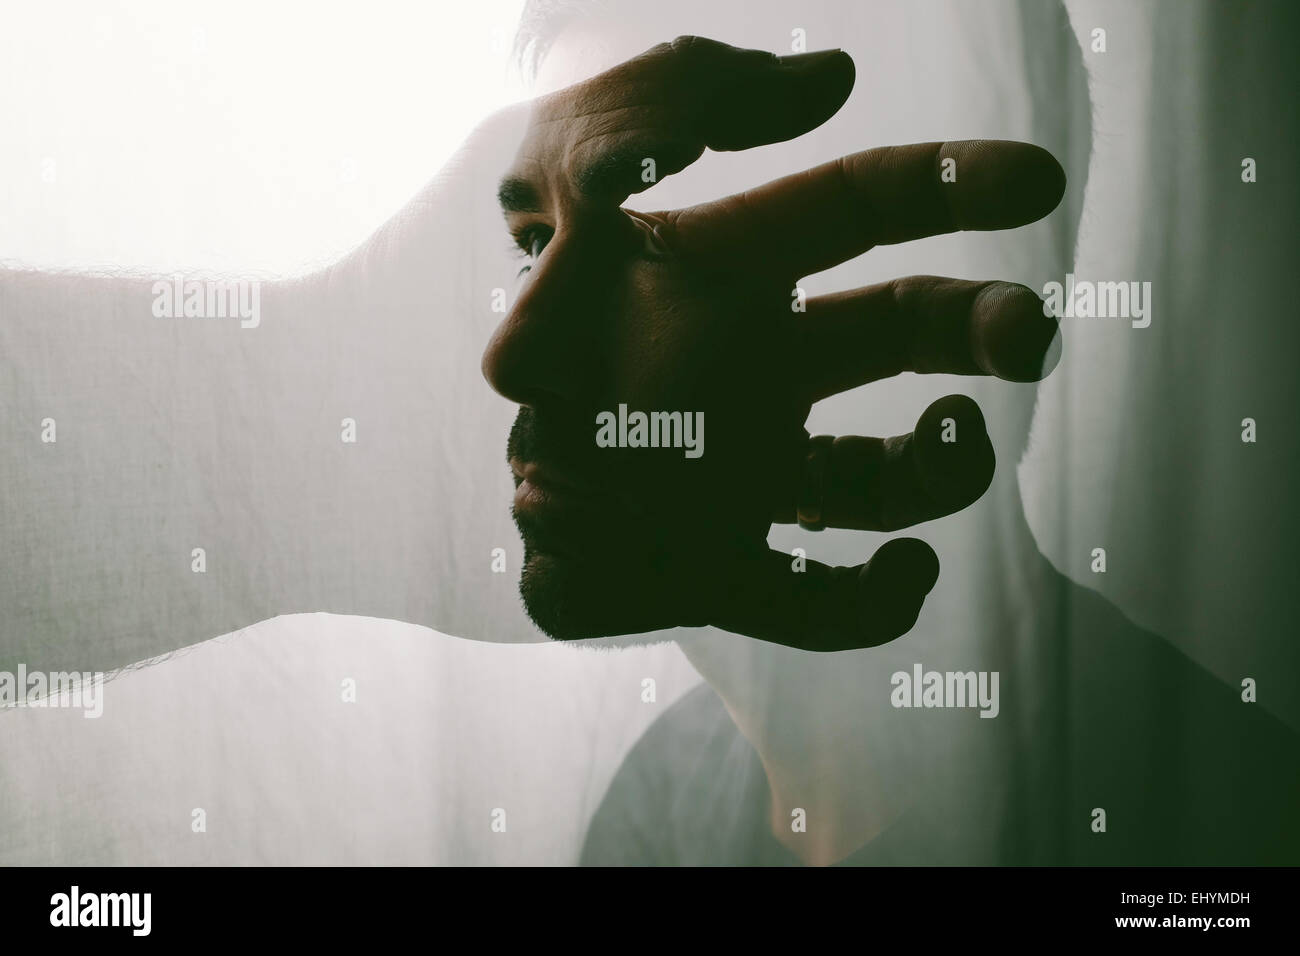 Conceptual portrait of a man searching within himself - Stock Image